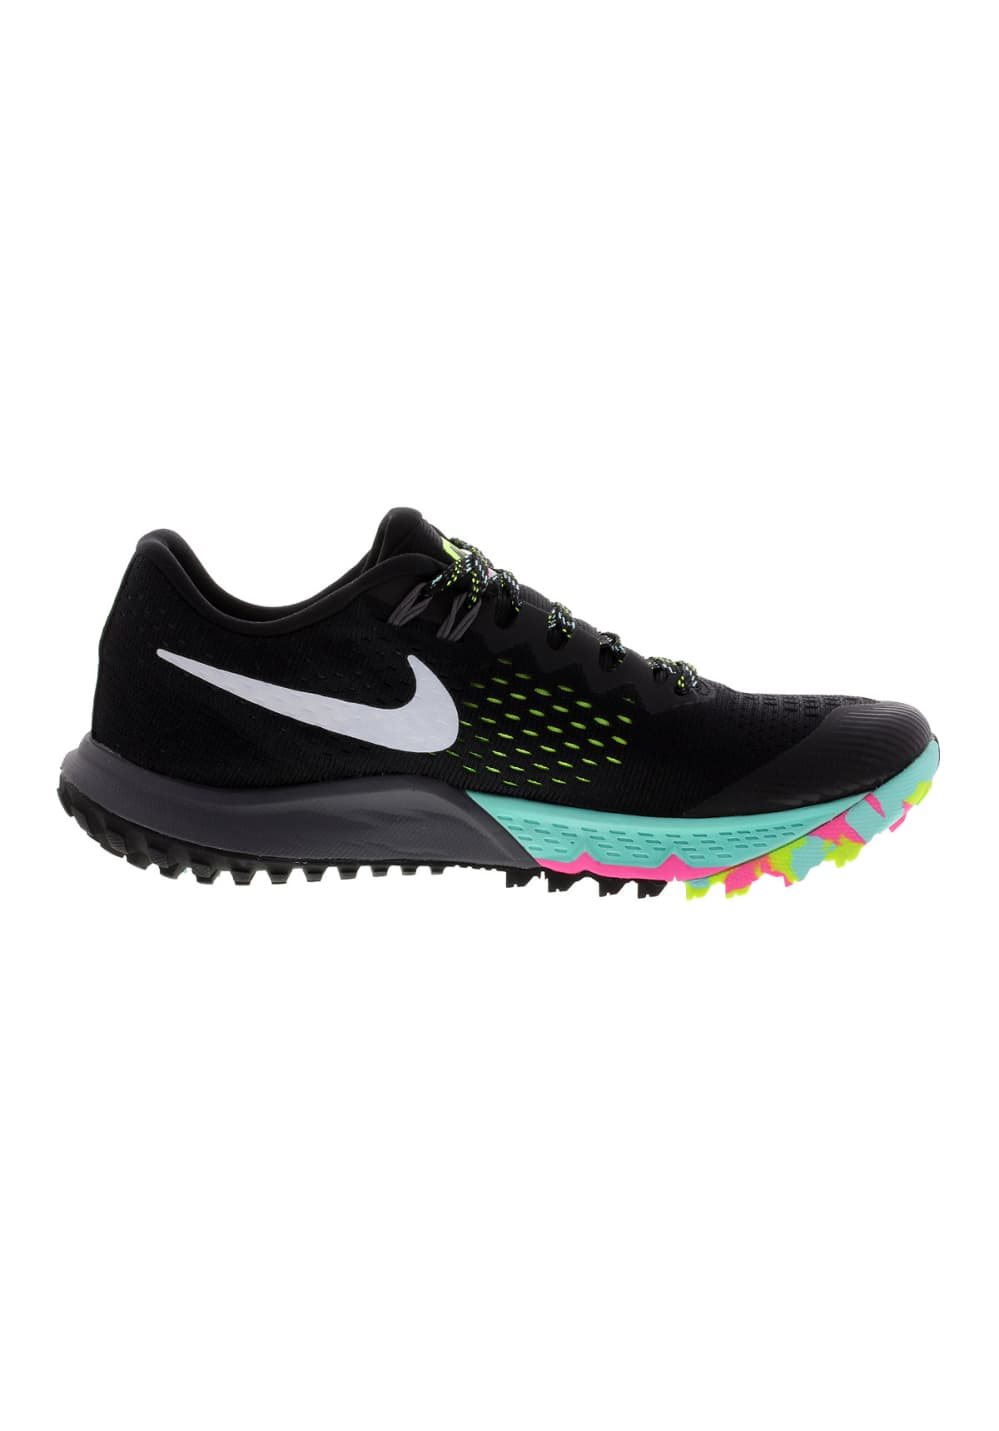 86b8eba31593 Next. -60%. This product is currently out of stock. Nike. Air Zoom Terra  Kiger ...